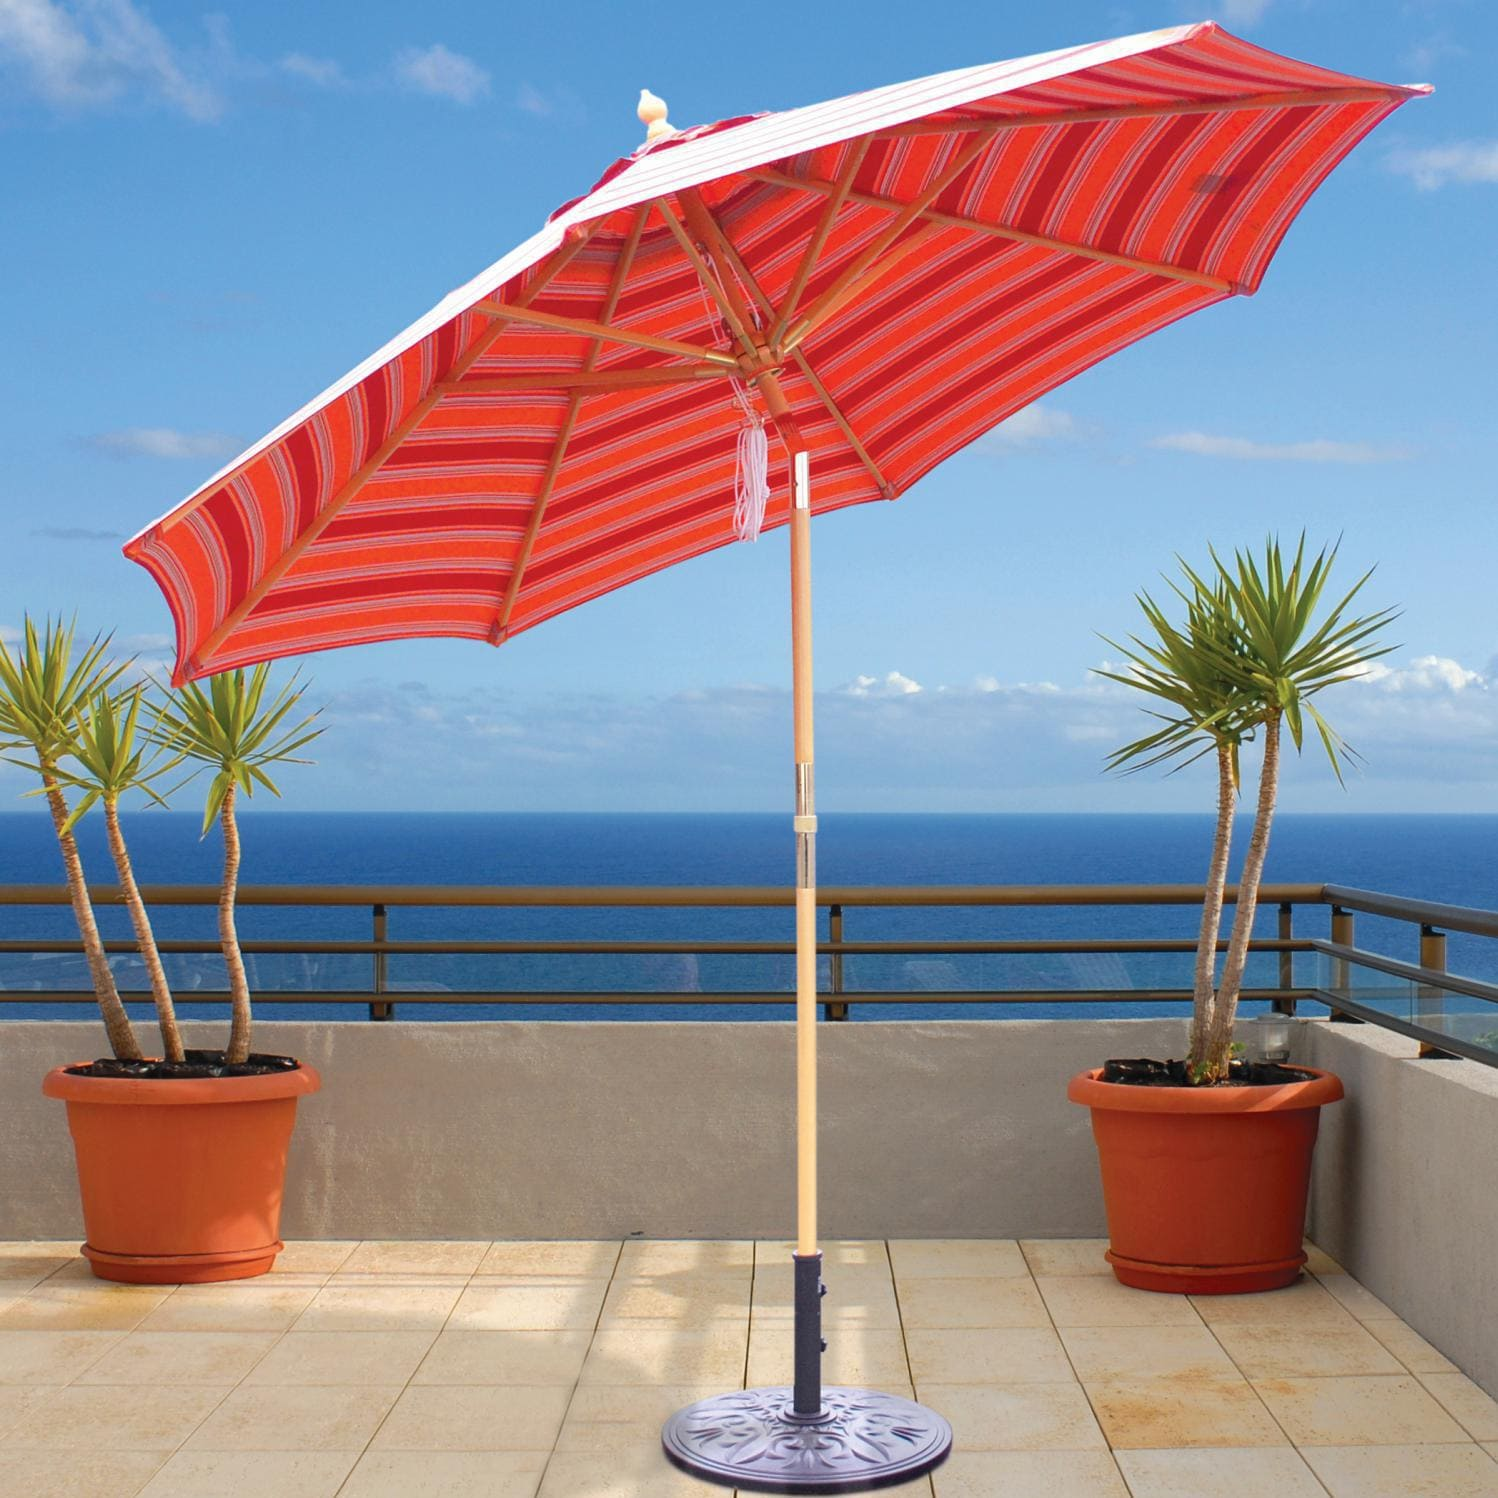 c61a6fc72bade Galtech 9 Ft Wood Patio Umbrella With Crank Lift And Rotational Tilt - Dark  Wood. zoom_in